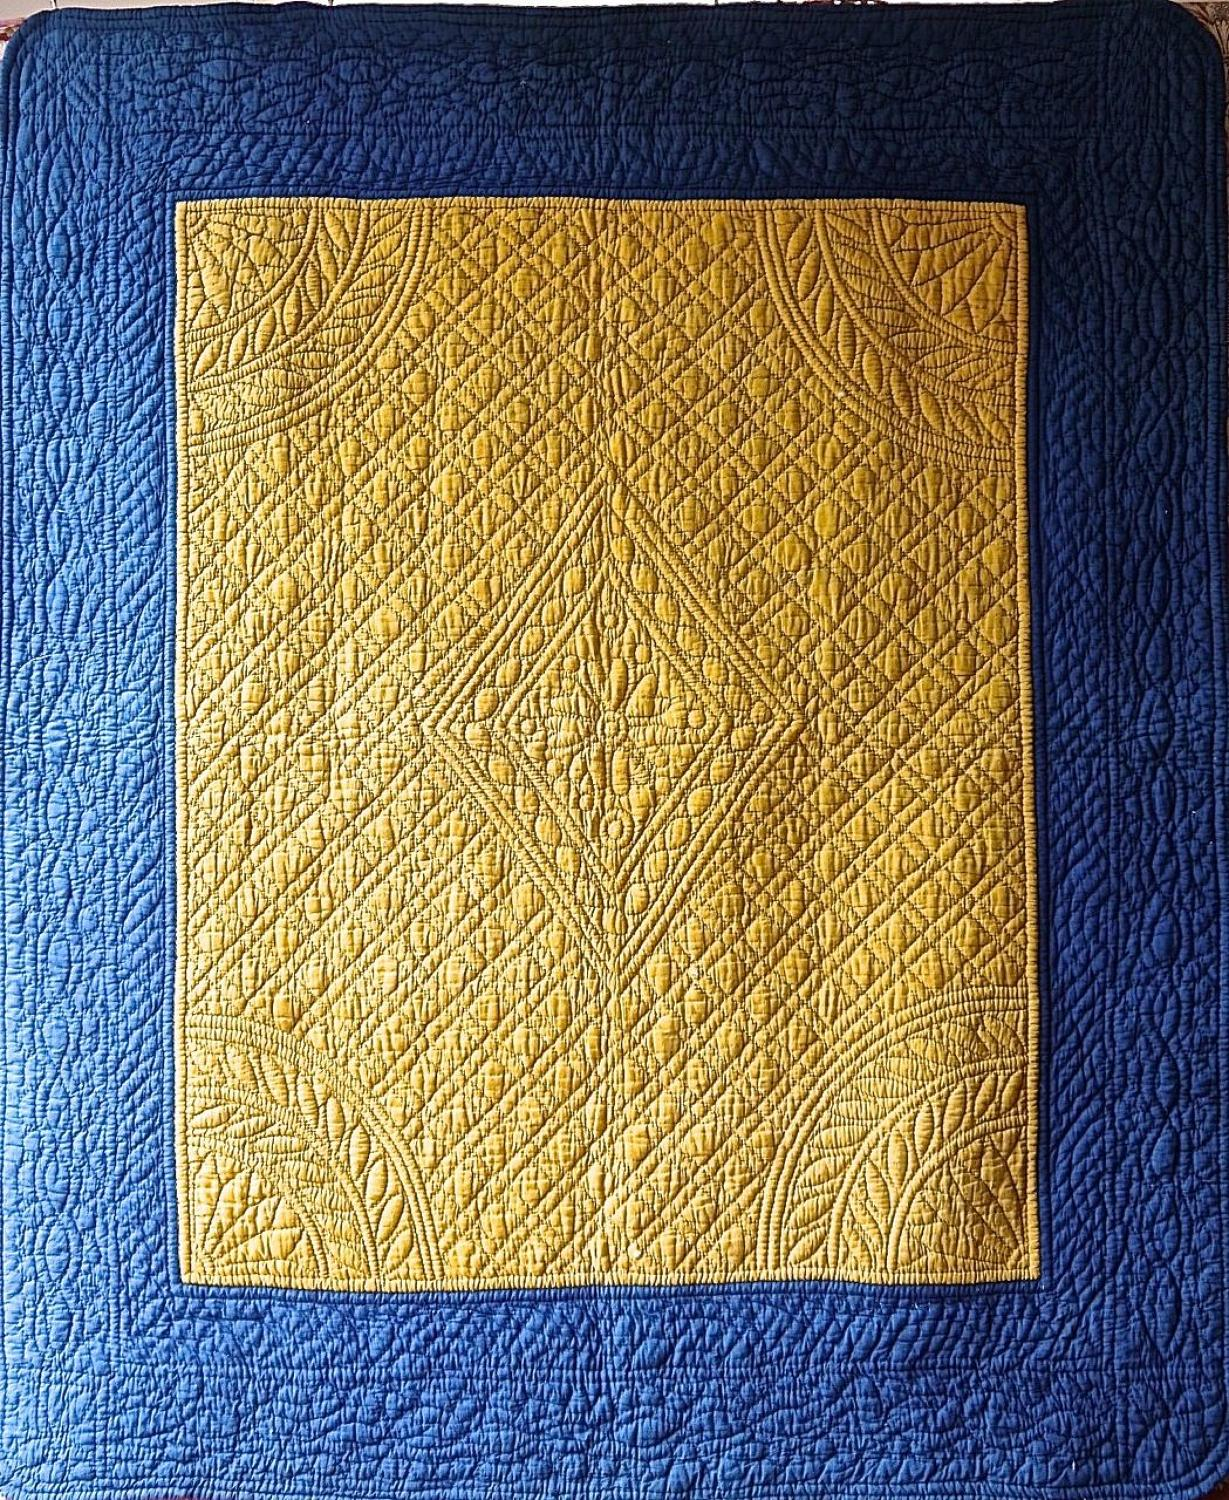 Indigo and Saffron Yellow Quilt